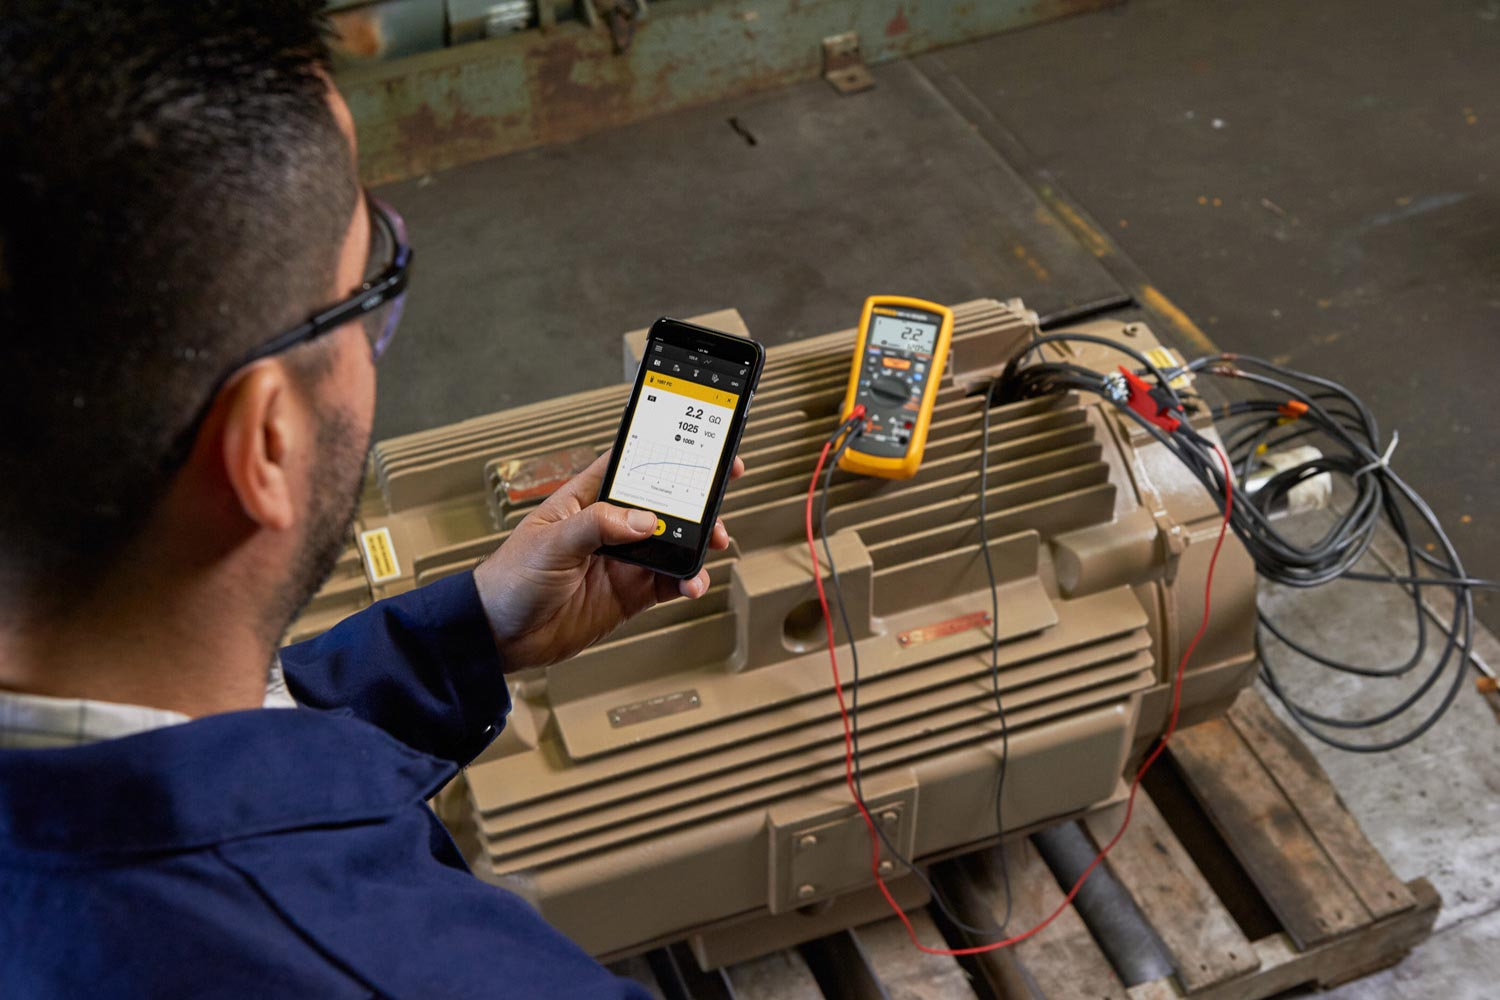 Fluke 1587 FC Insulation Multimeter, performing a high-voltage megohm test